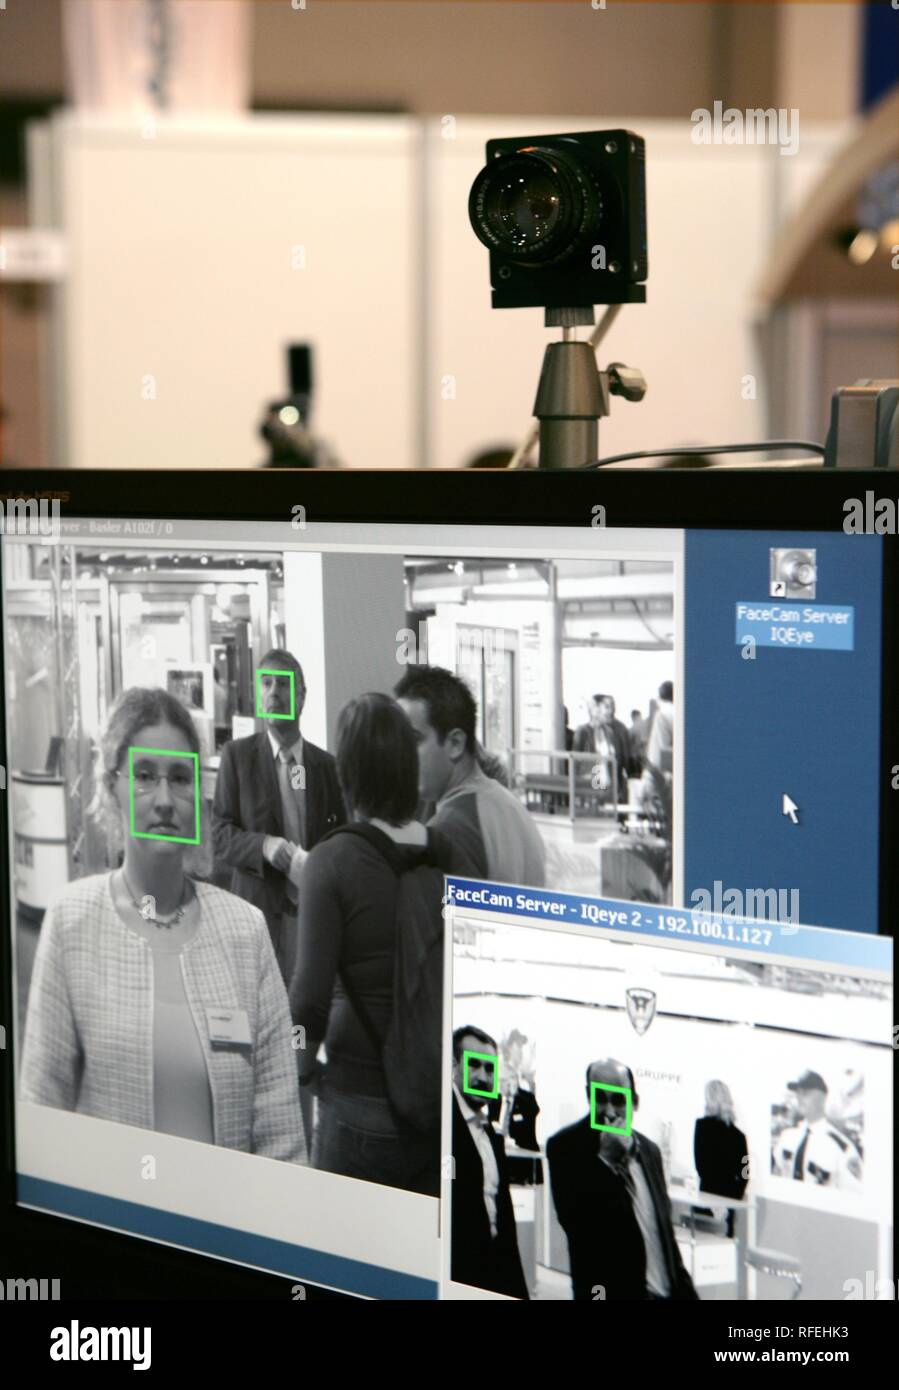 Security trade fair, world biggest trade fair of the security industry. Surveillance camera is comparing faces with database - Stock Image